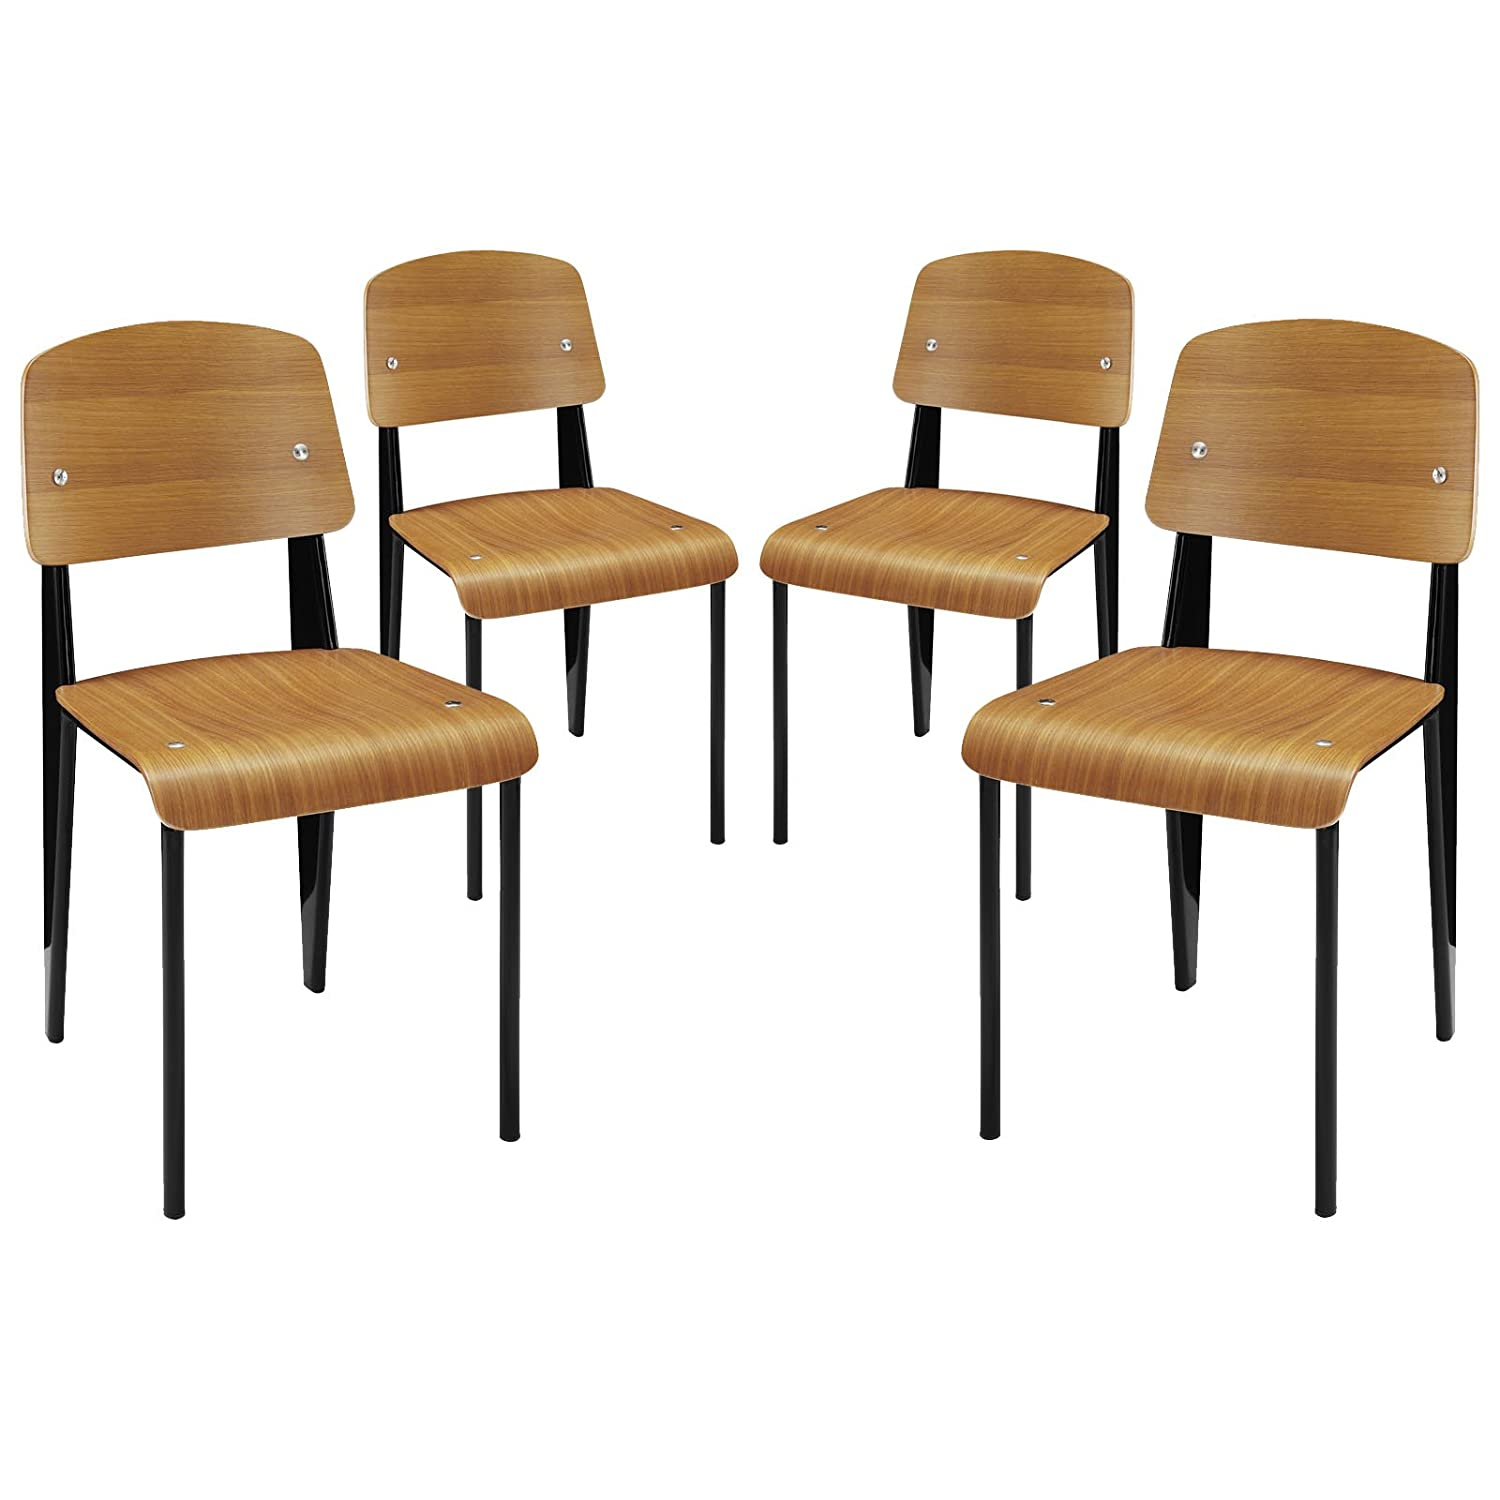 Modway Cabin Modern Dining Side Chairs in Walnut - Set of 4